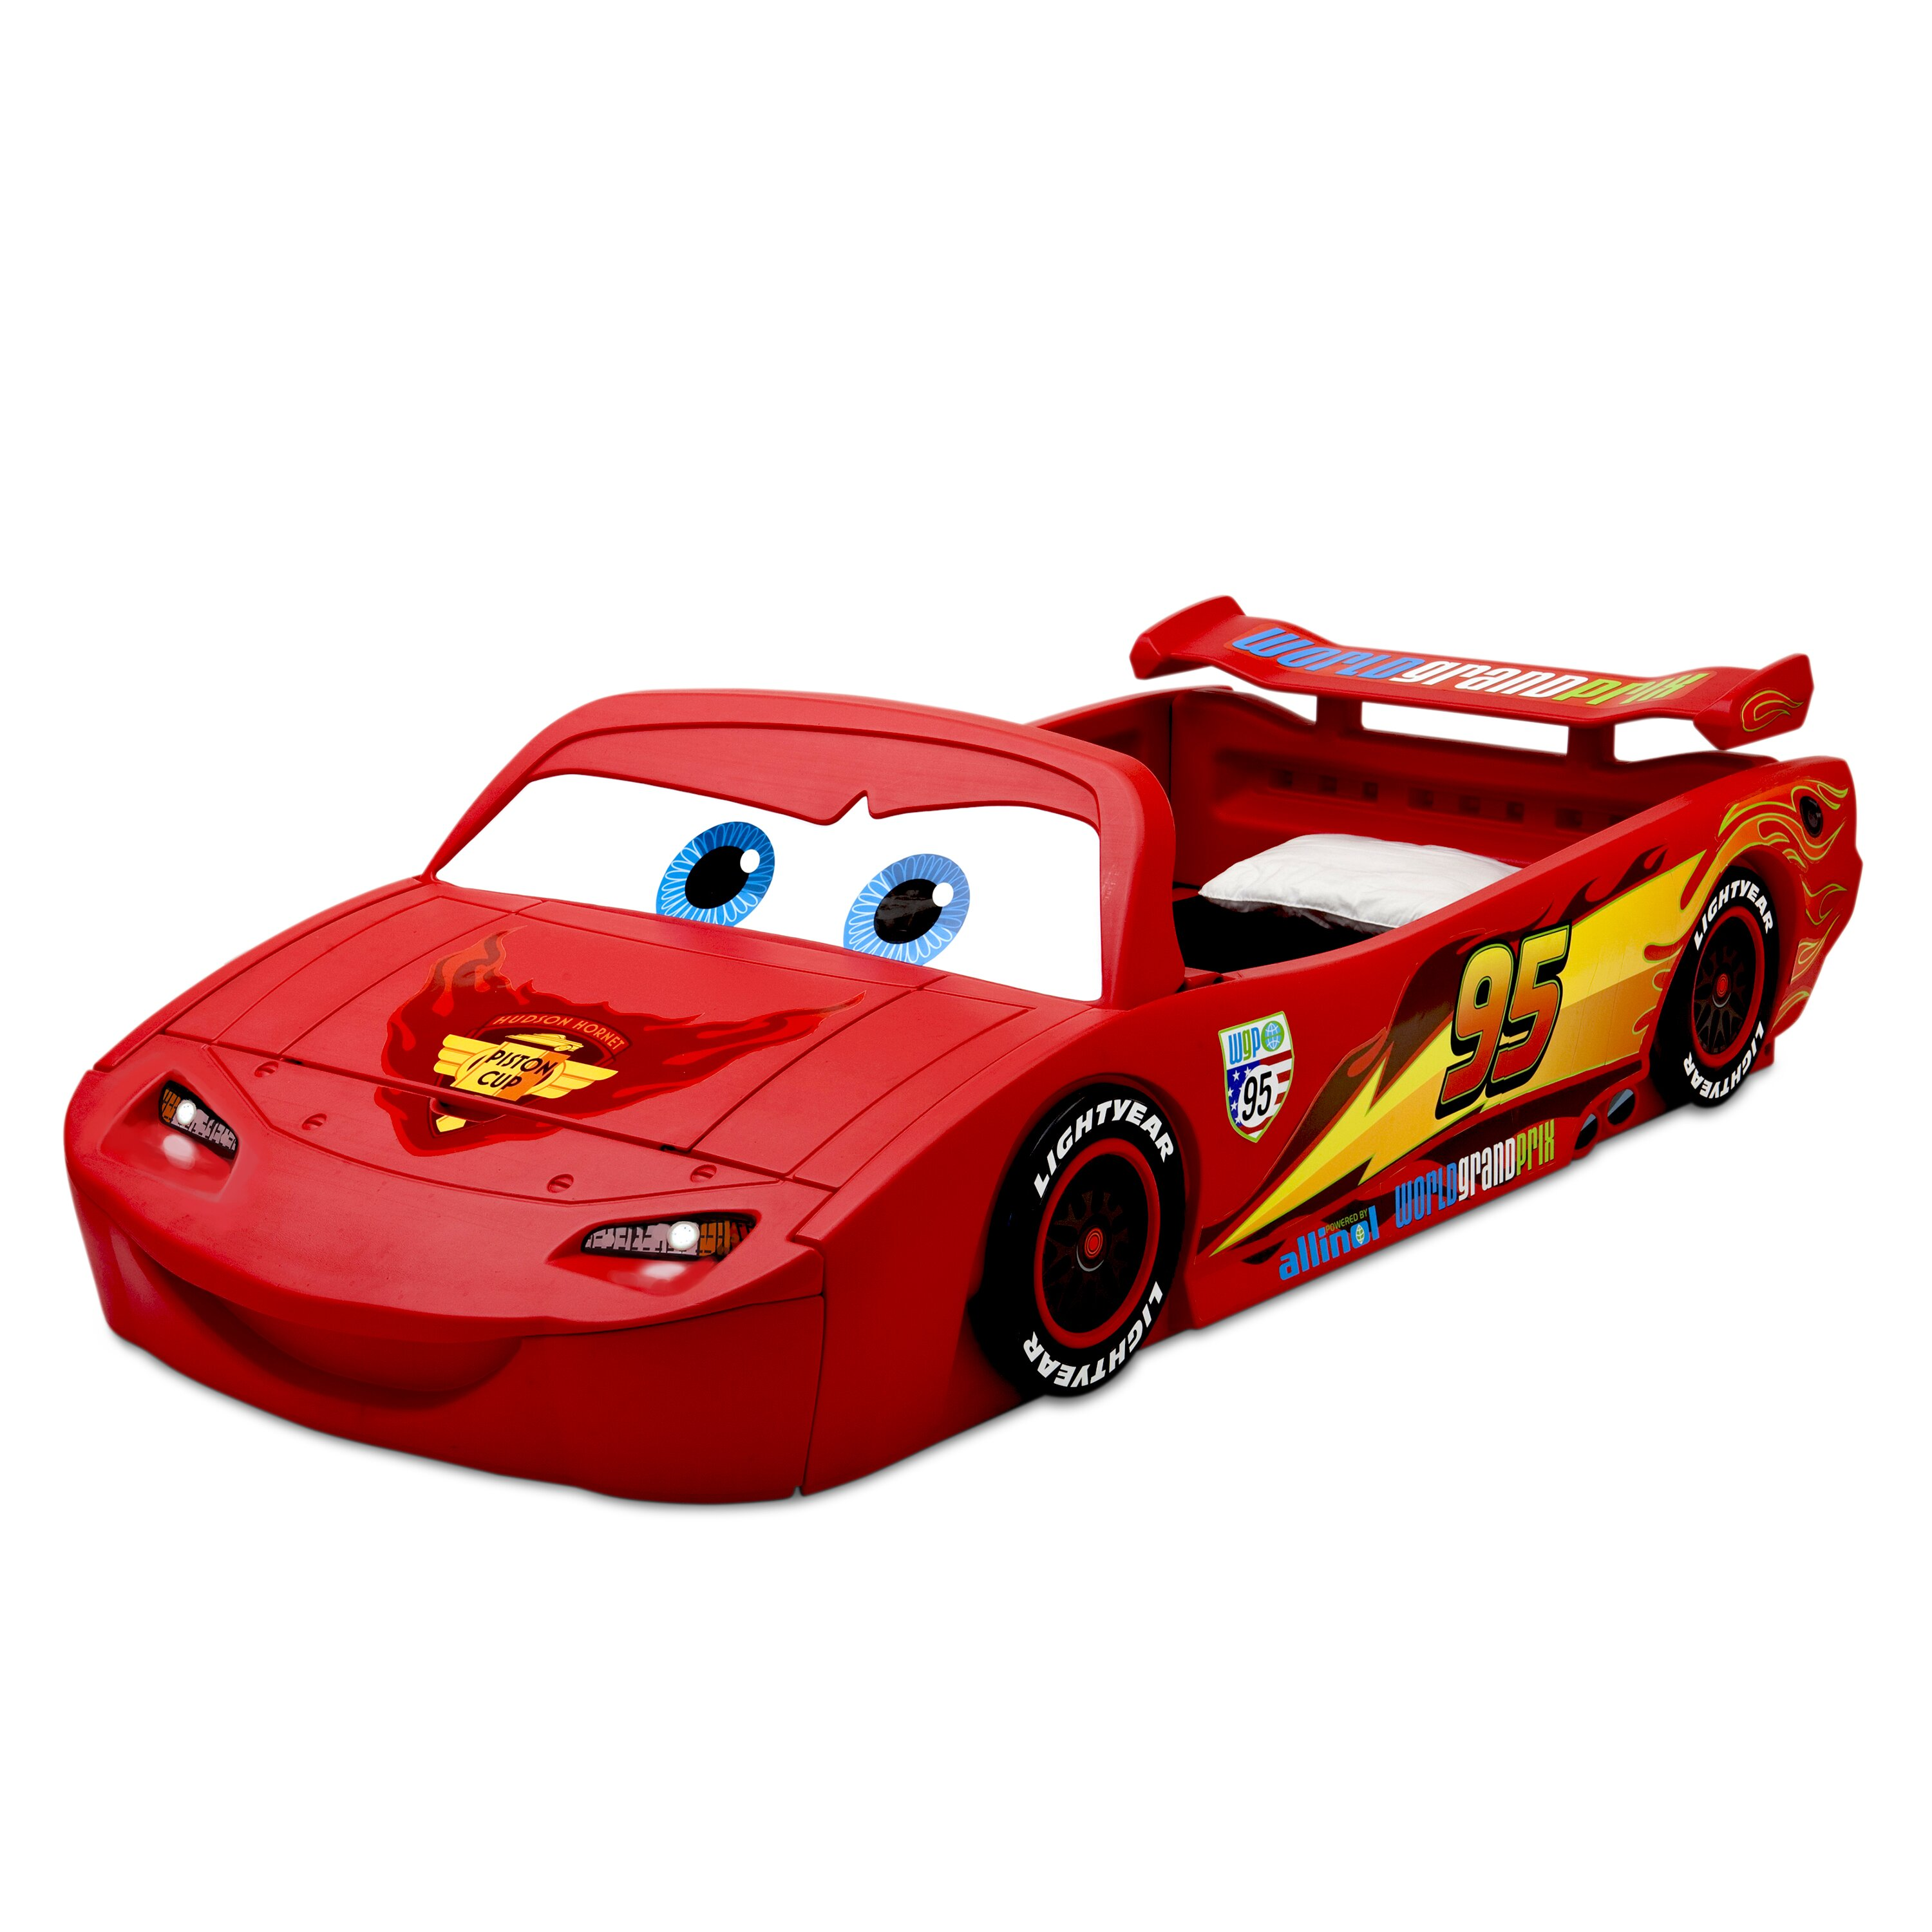 Little tikes lightning mcqueen toddler bed - Delta Children Disney Pixar Cars Lightning Mcqueen Covertible Toddler Bed With Lights And Toy Box